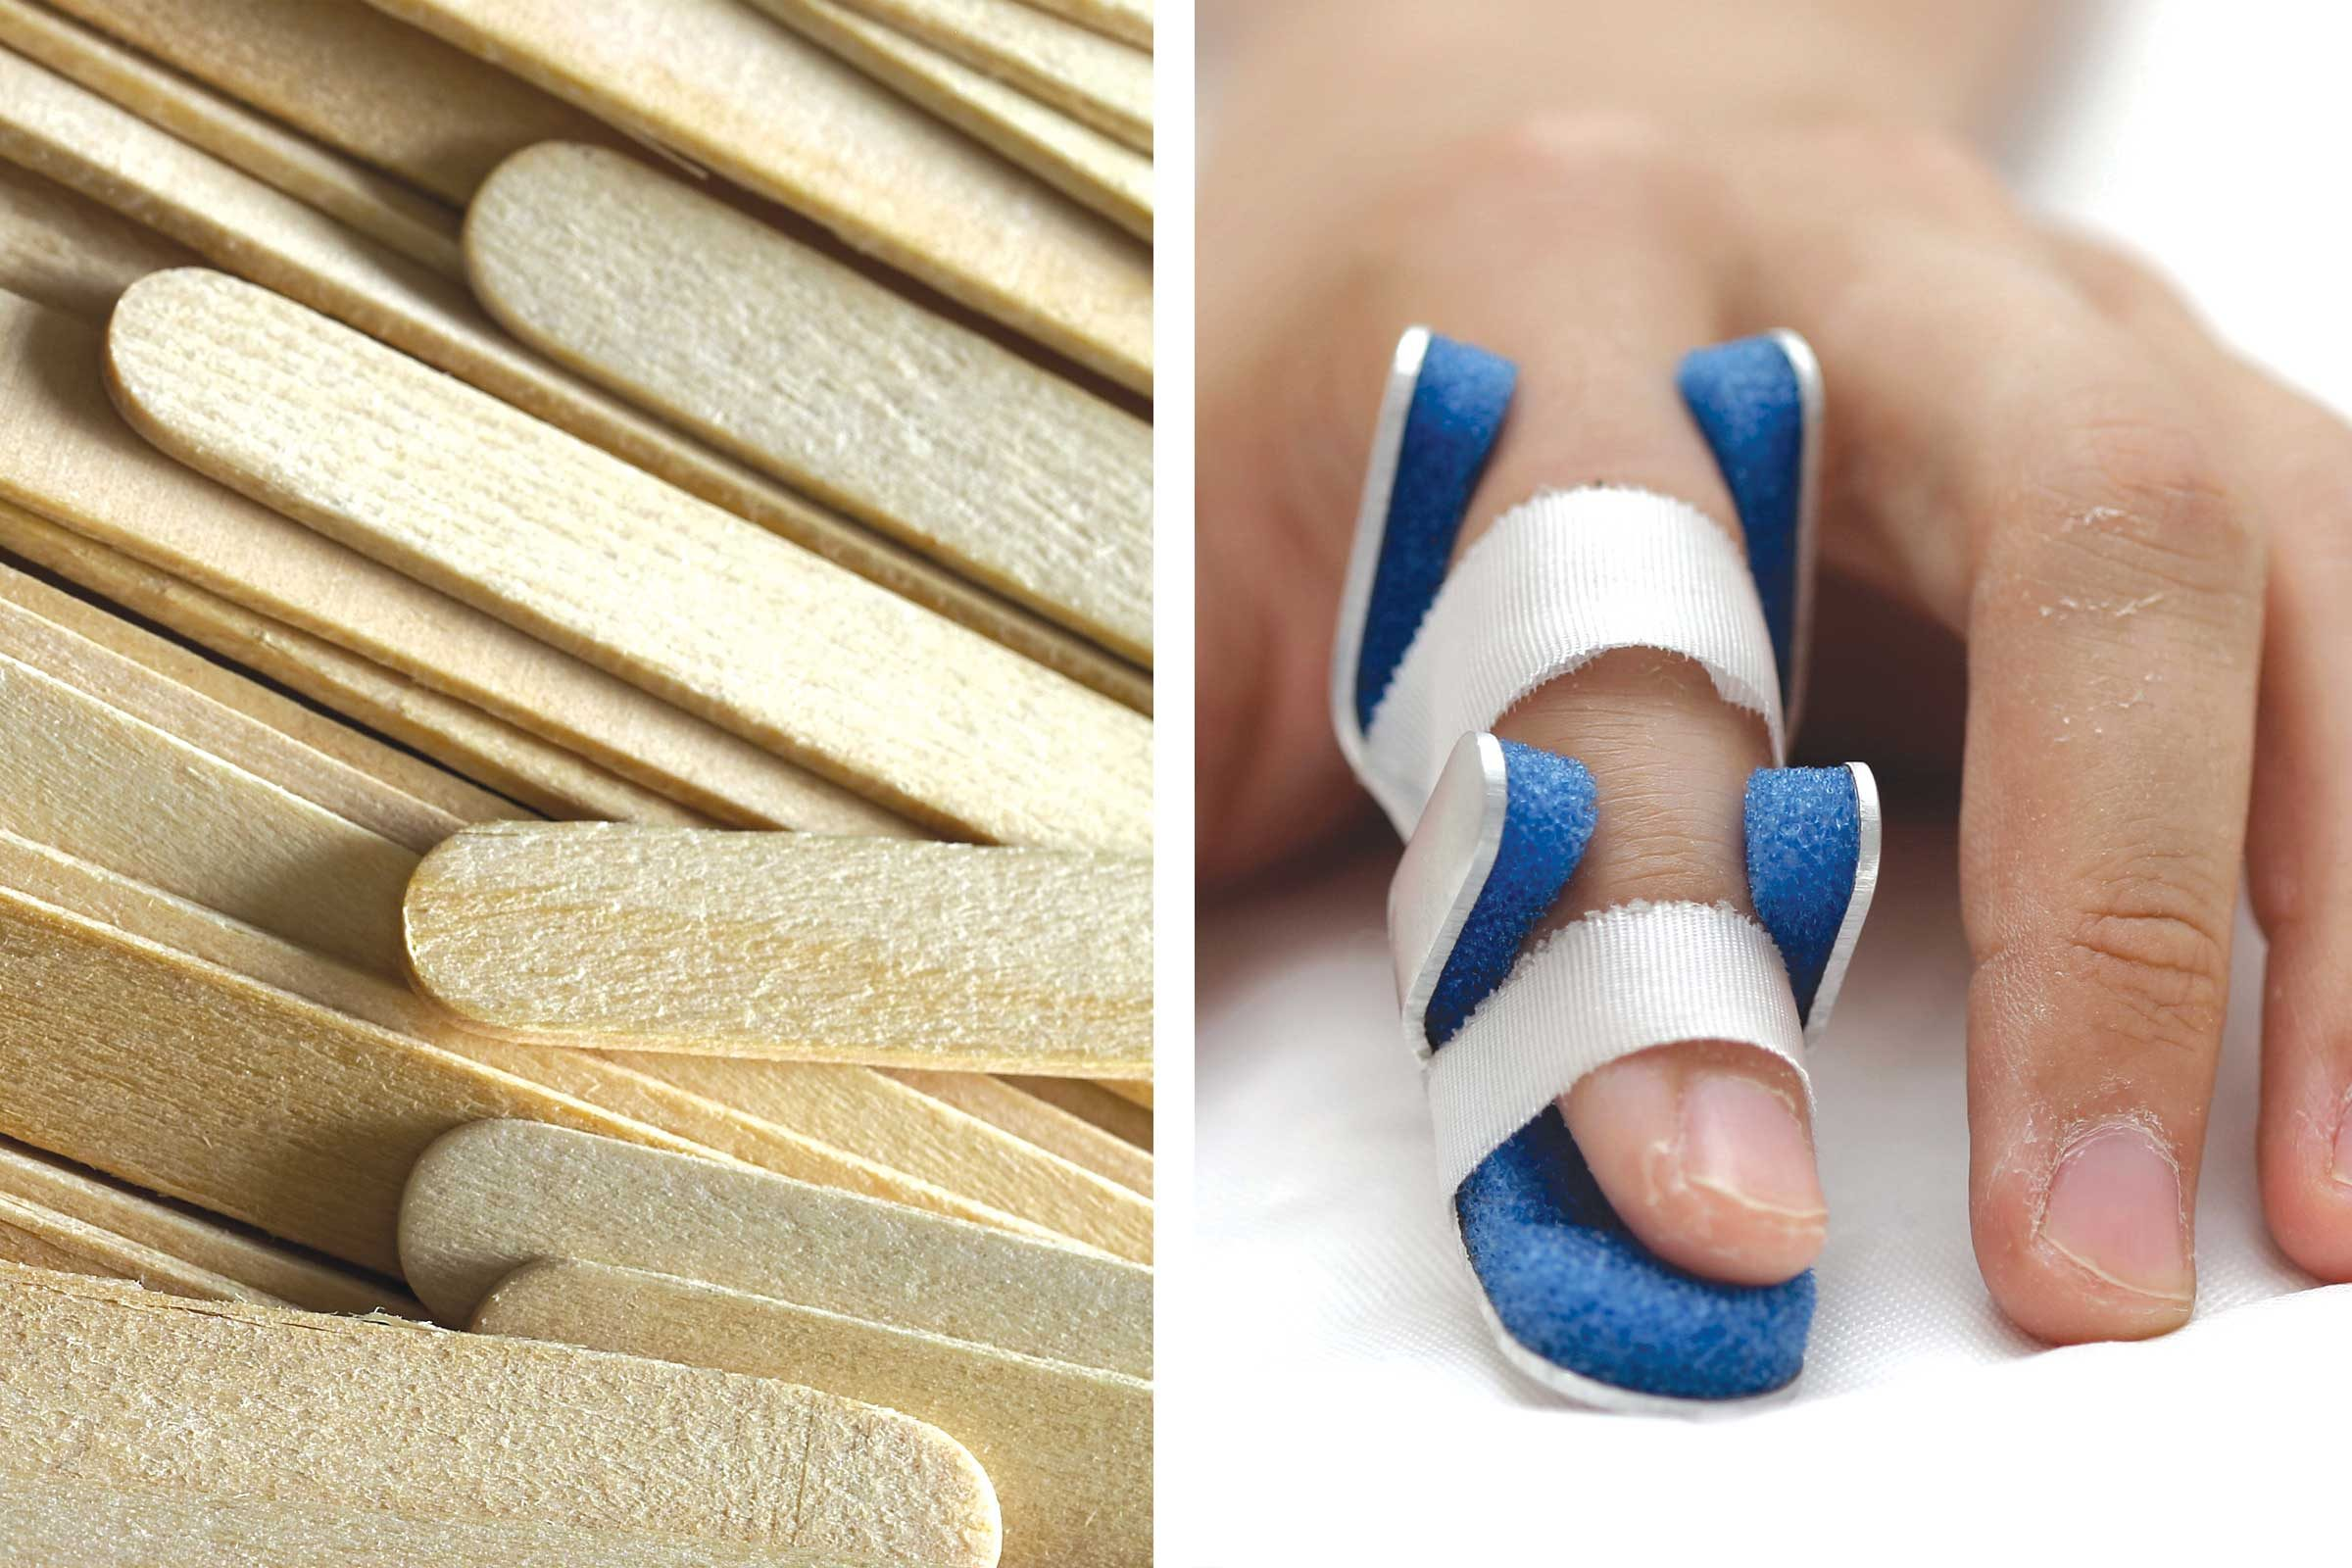 how to make a finger splint without a popsicle stick